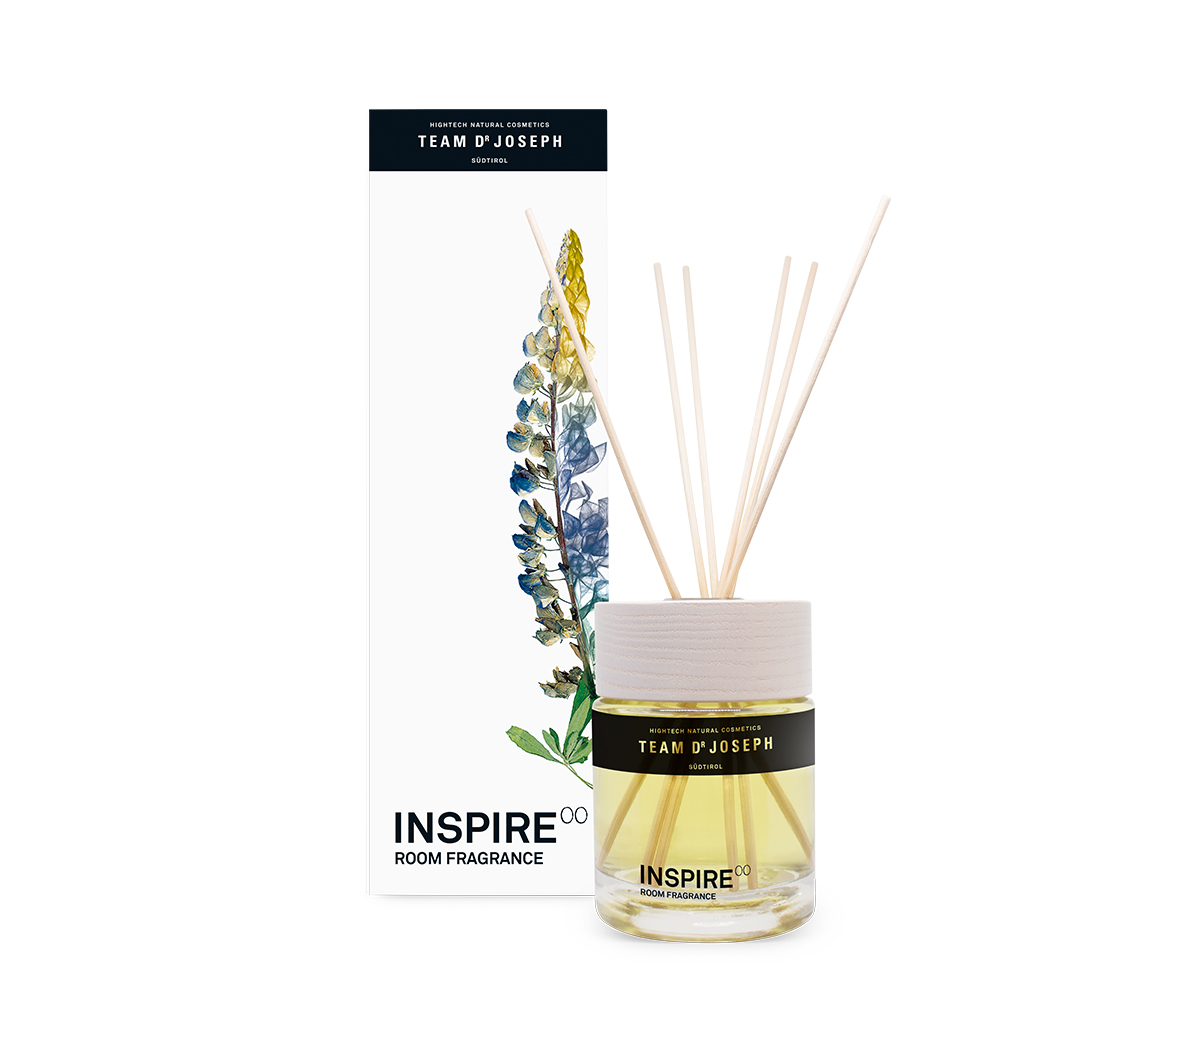 Inspire Room Fragrance, 200 ml